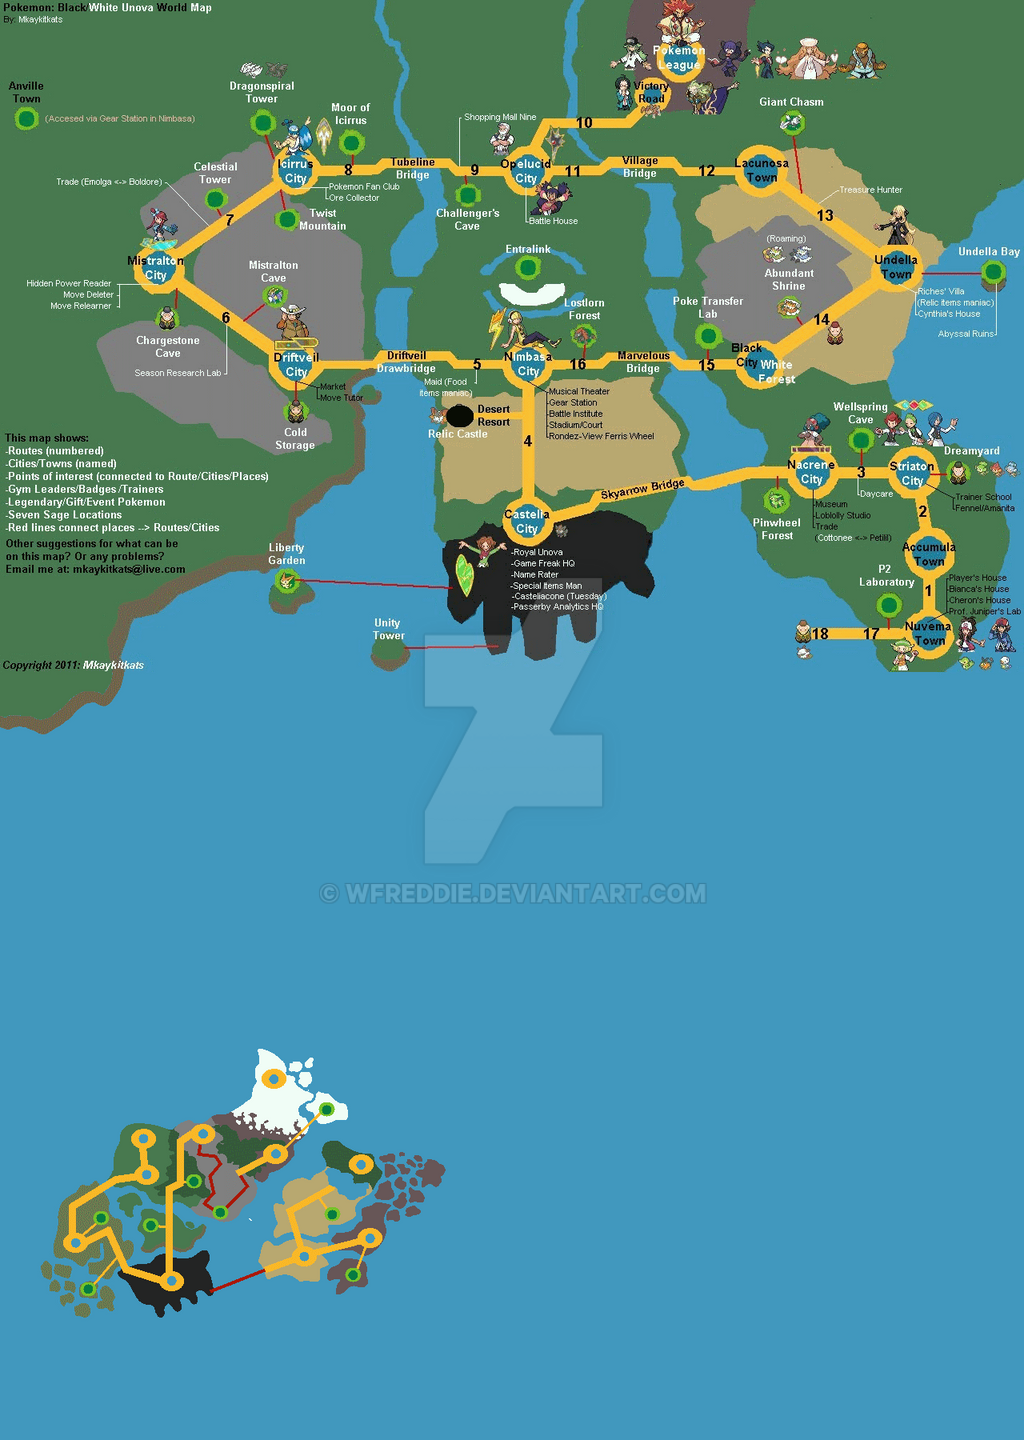 Angofia Islands Location in Pokemon World Map by WFreddie on DeviantArt